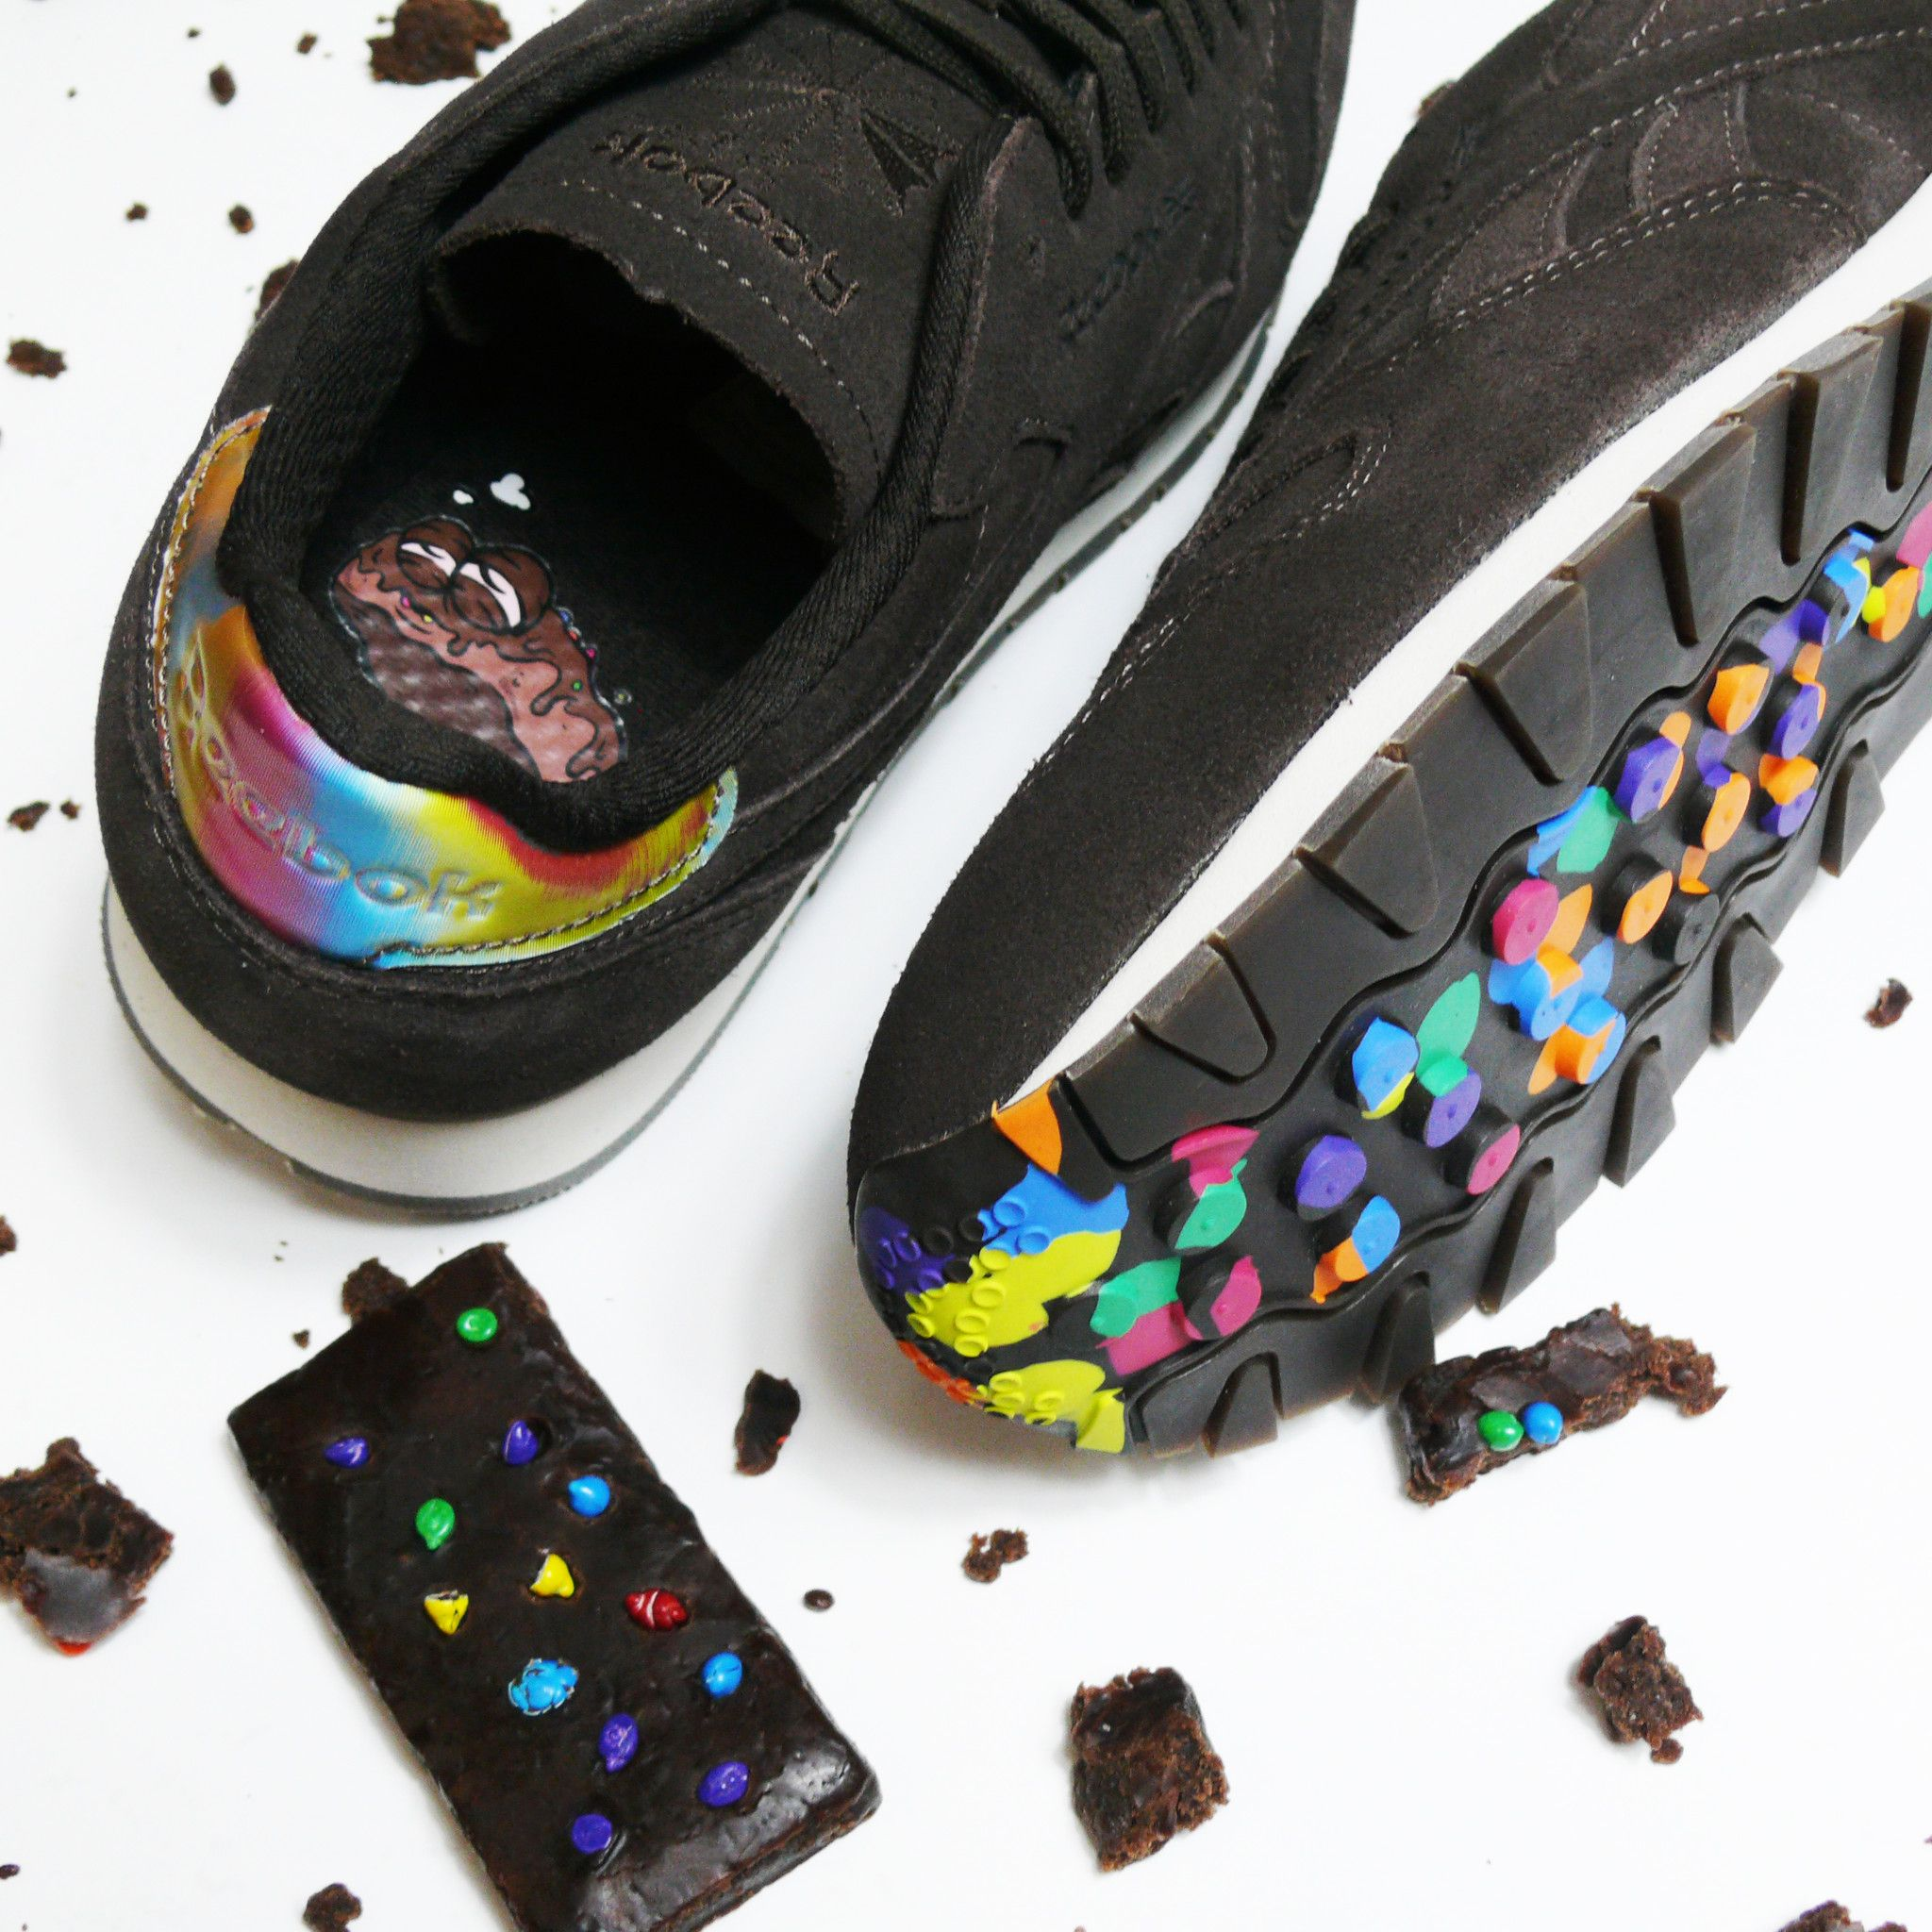 221359cef5b Reebok classic leather leather MSP munchies pack cosmic brownies ...